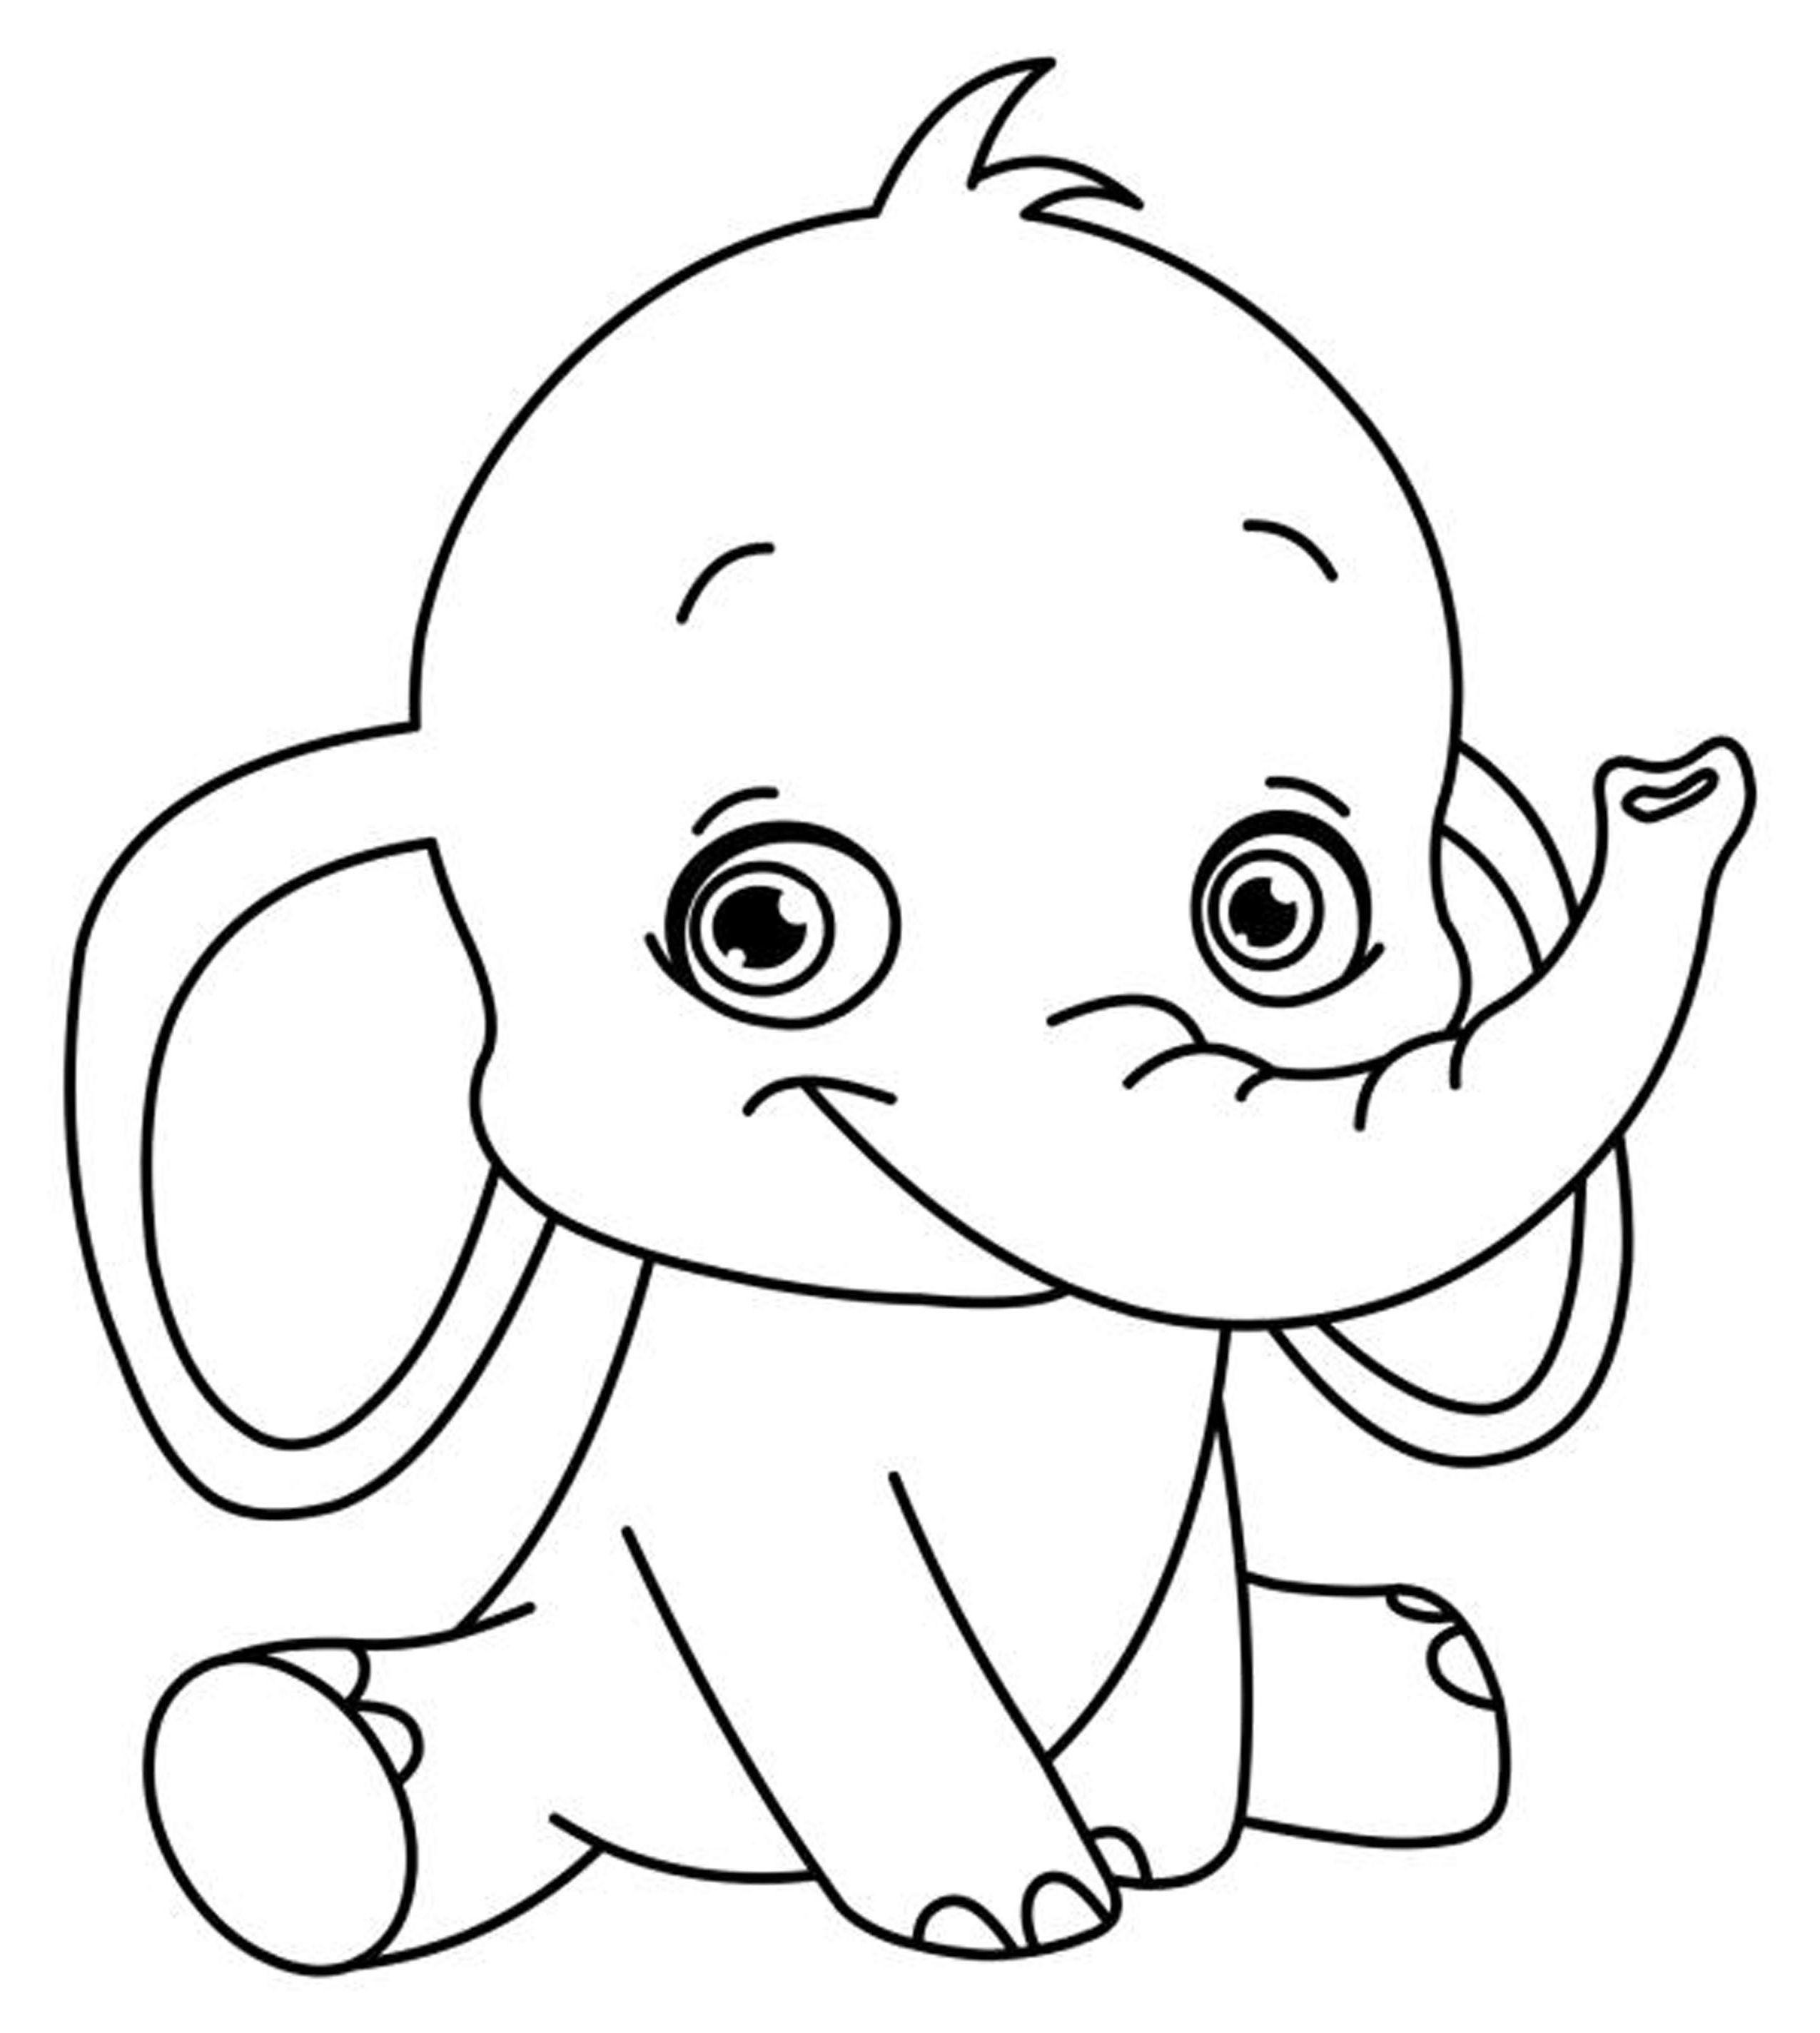 free printable pictures to color pages to colour for kids printable coloring pages printable to color pictures free